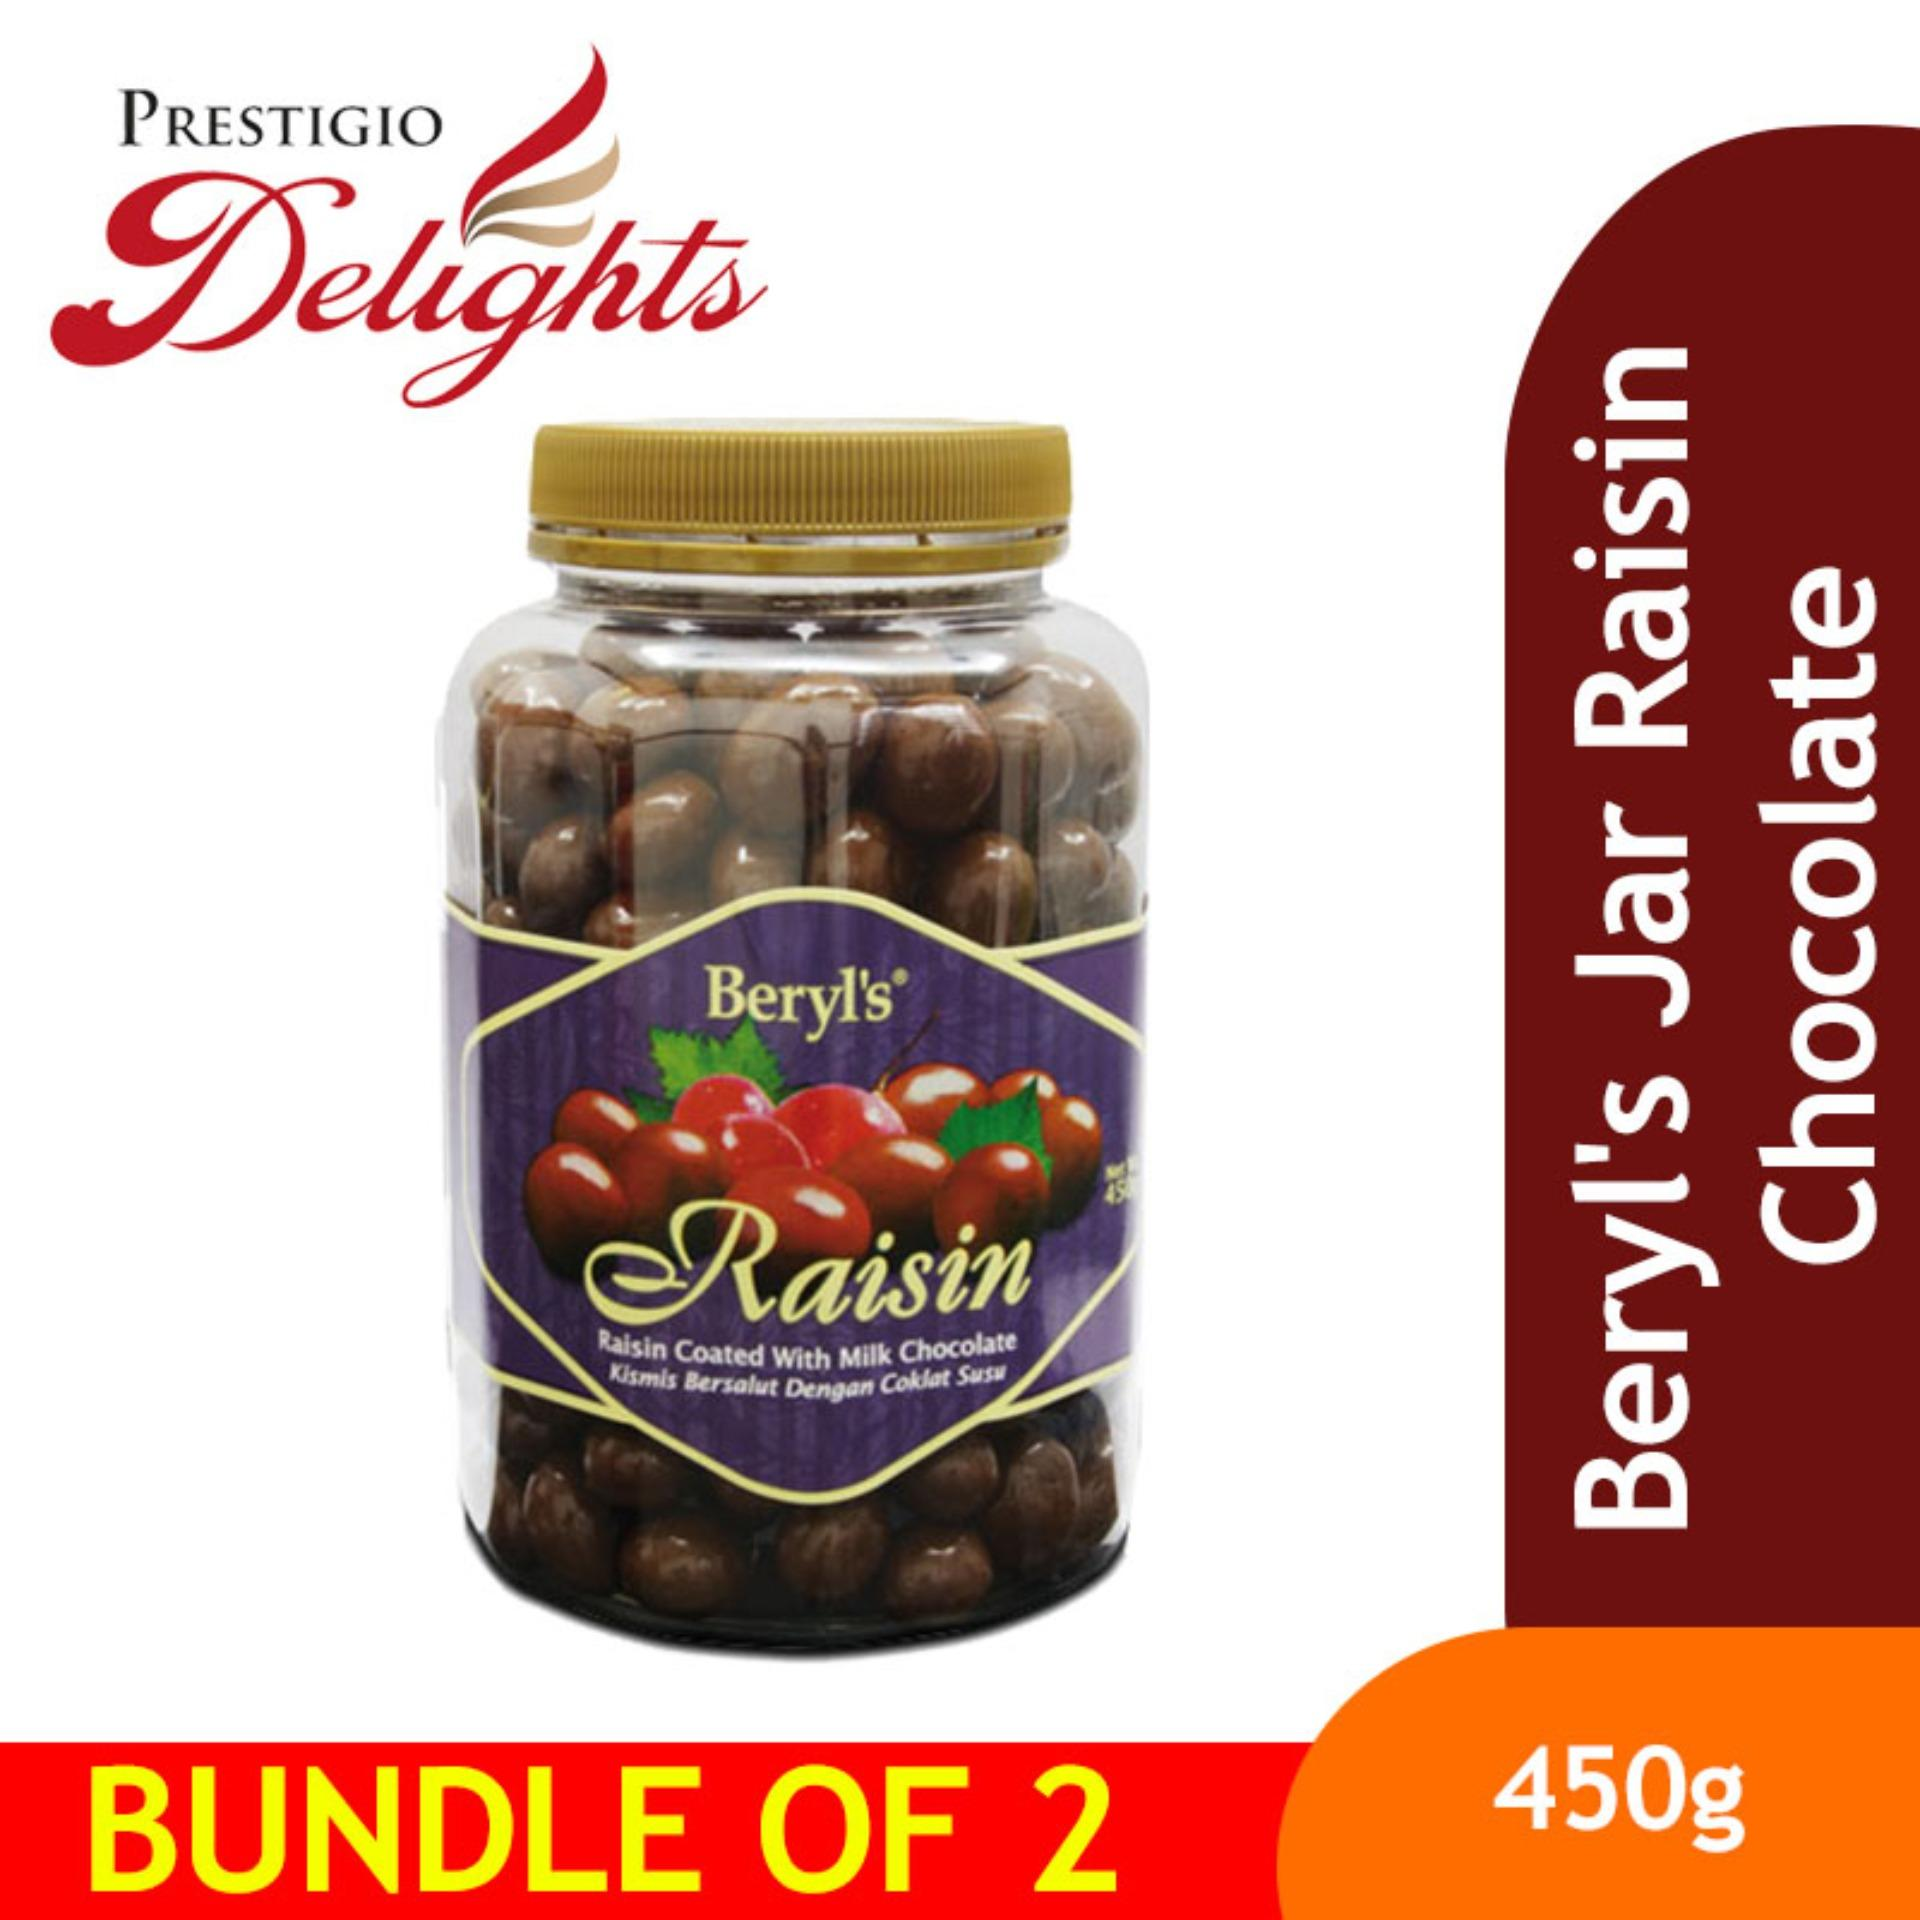 Beryls Jar Raisin Chocolate Bundle Of 2 By Prestigio Delights.